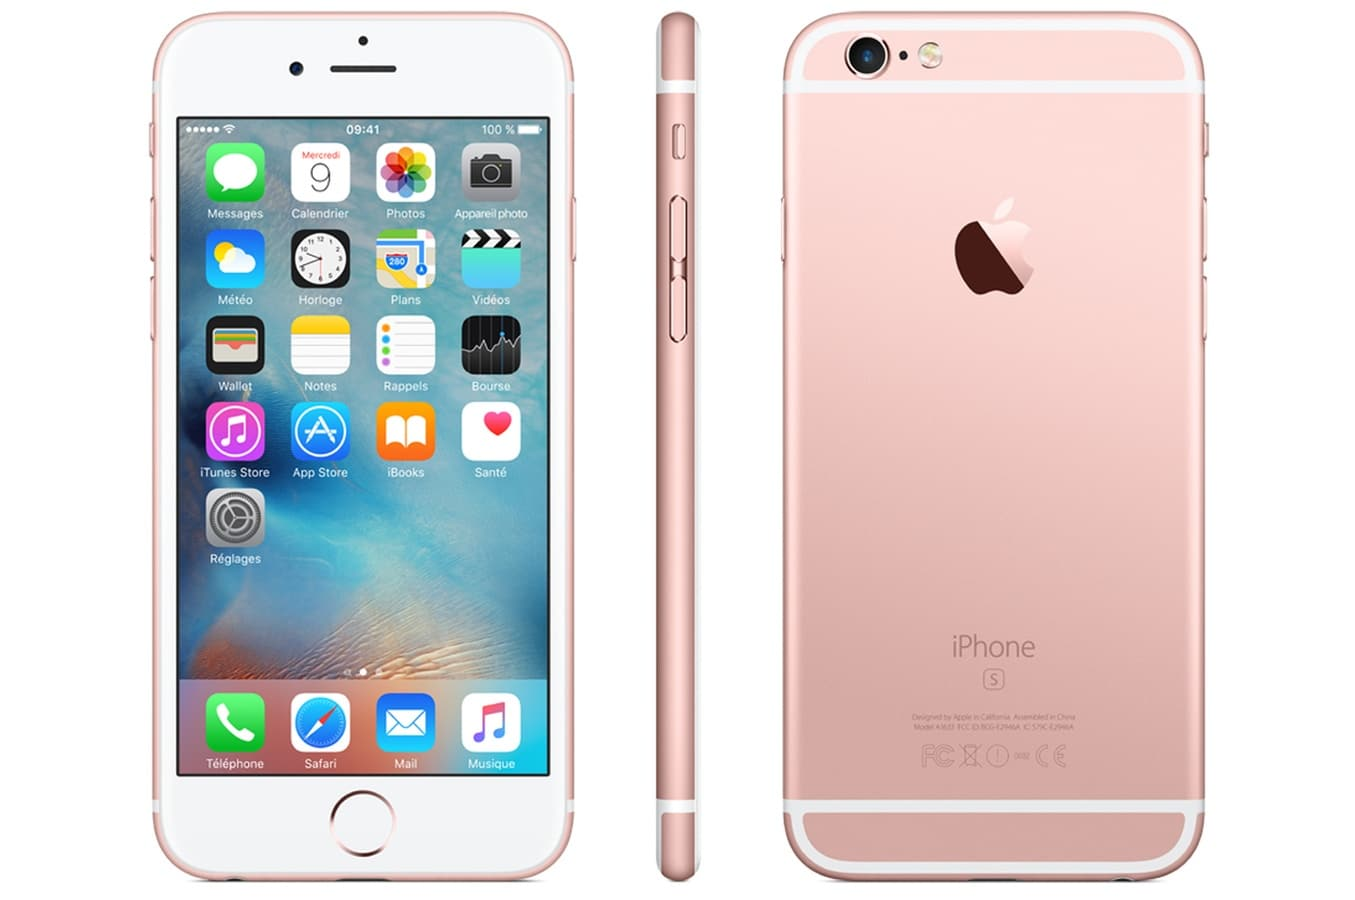 iphone 6s reconditonn bob recycle achat vente r paration smartphone. Black Bedroom Furniture Sets. Home Design Ideas